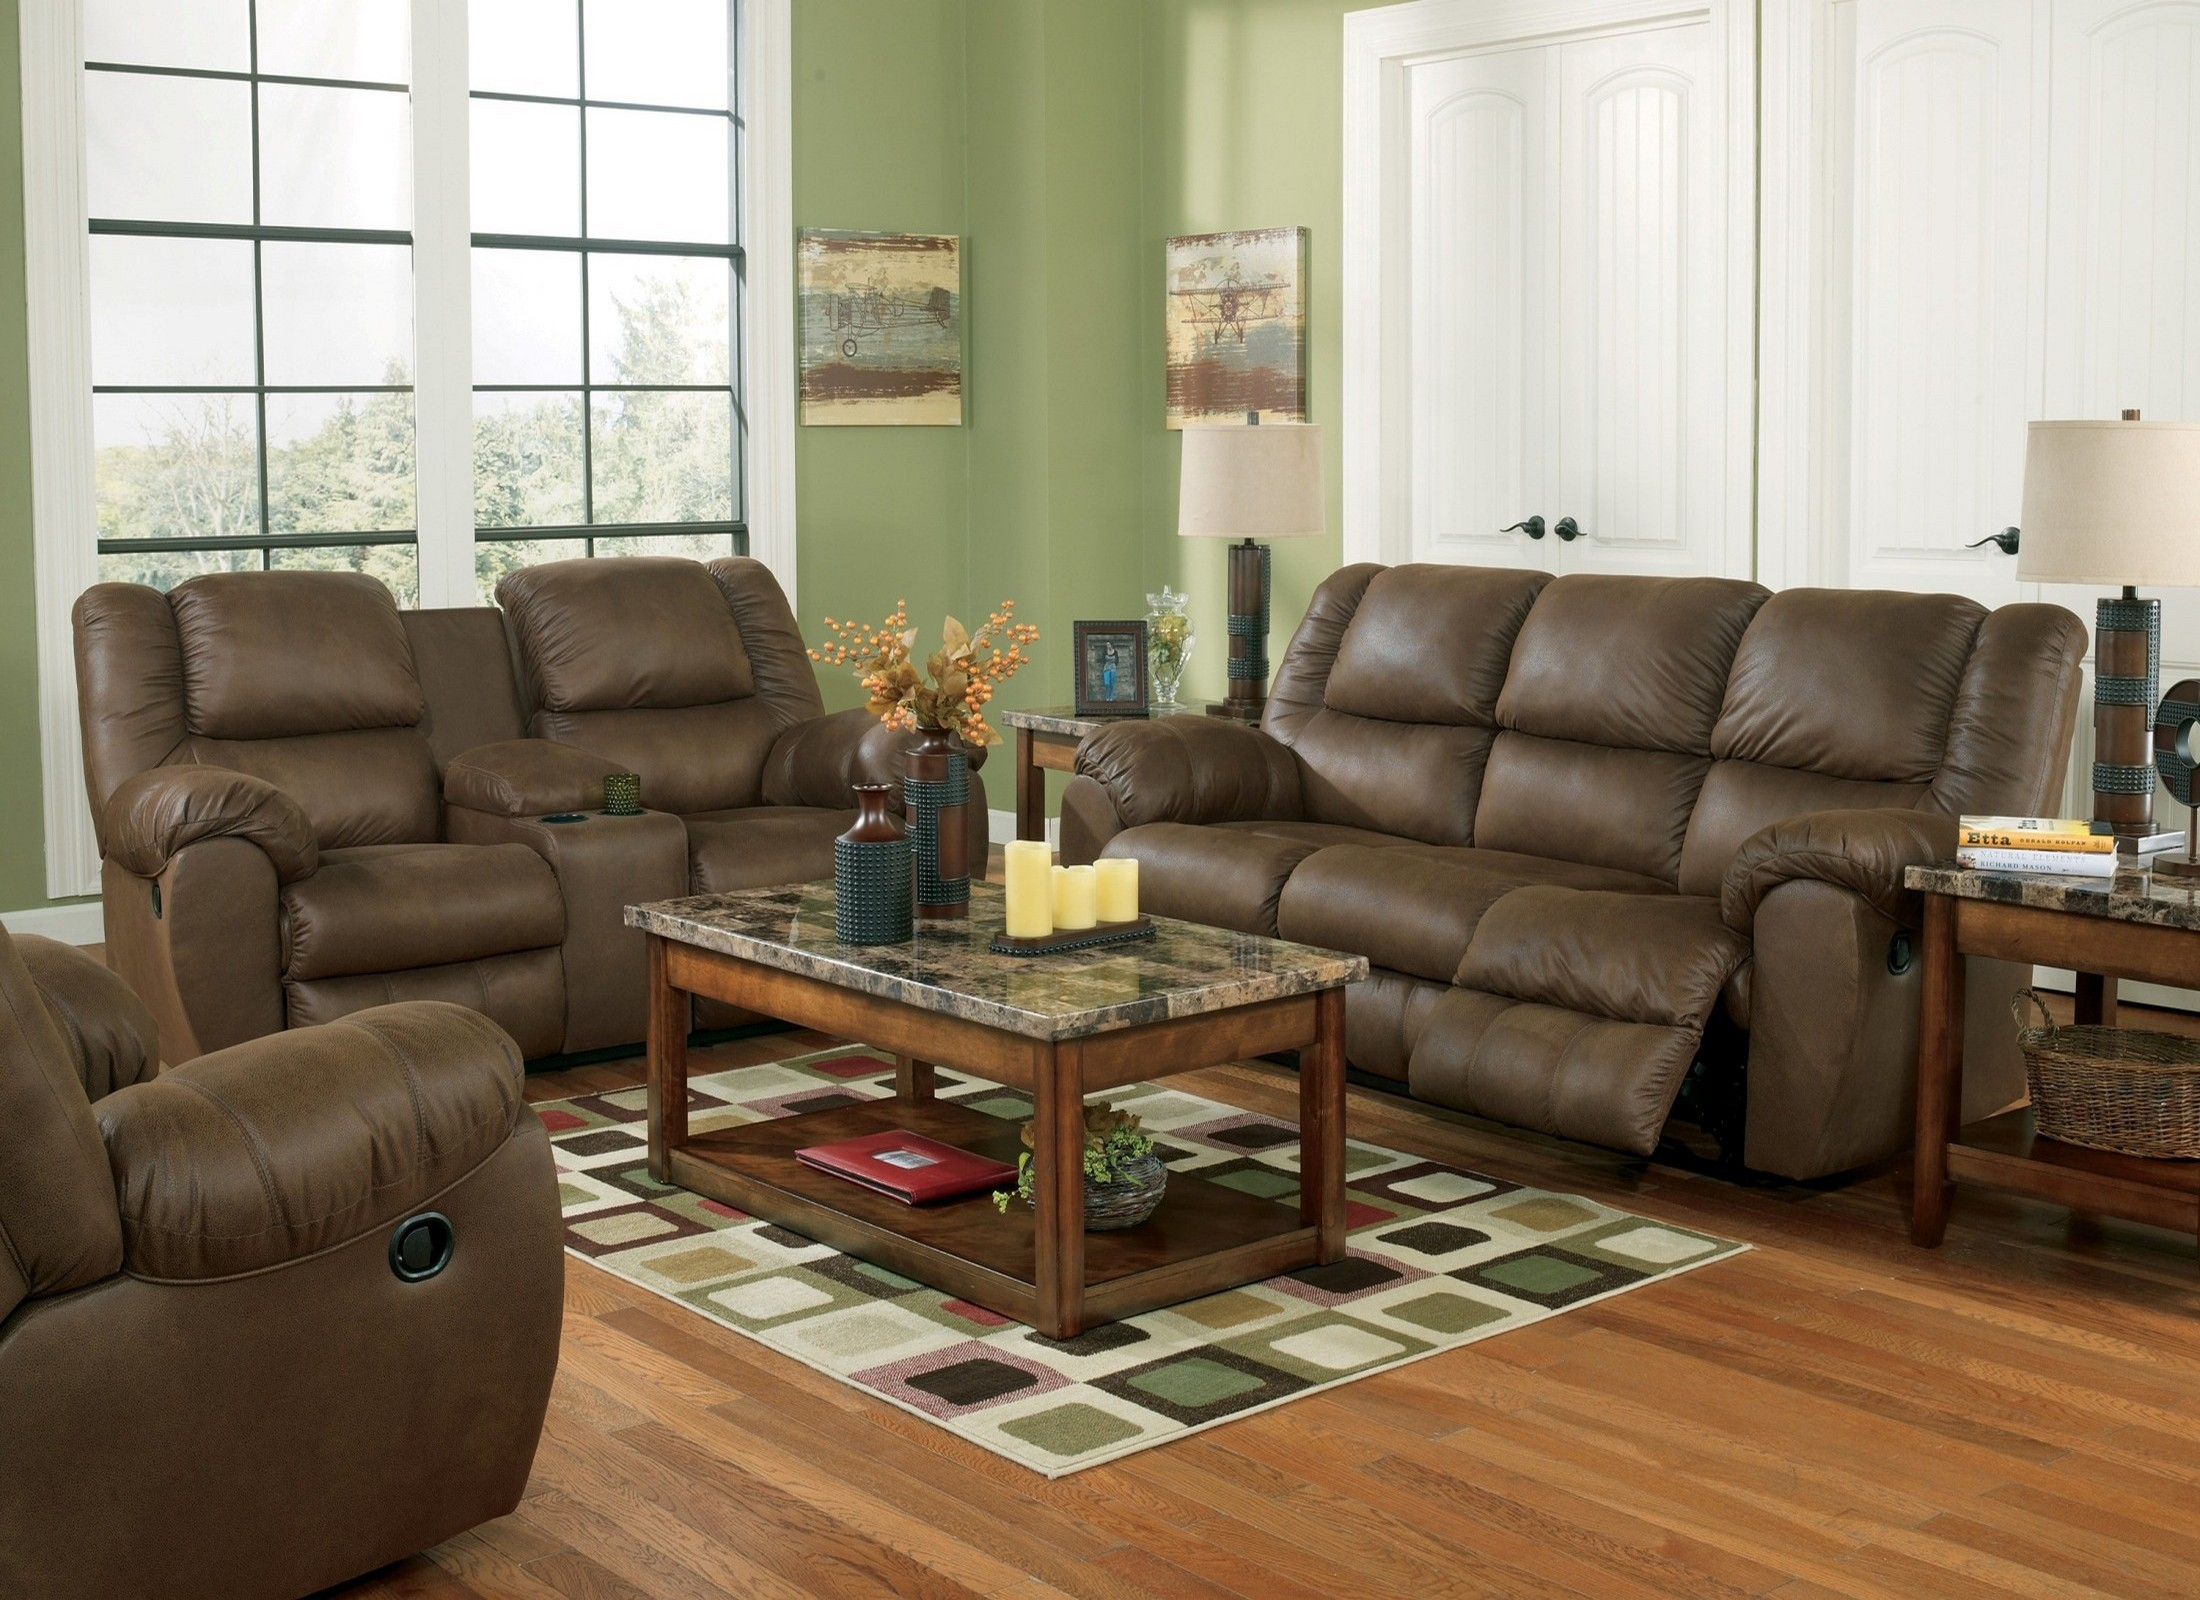 Quarterback Canyon Reclining Living Room Set From Ashley